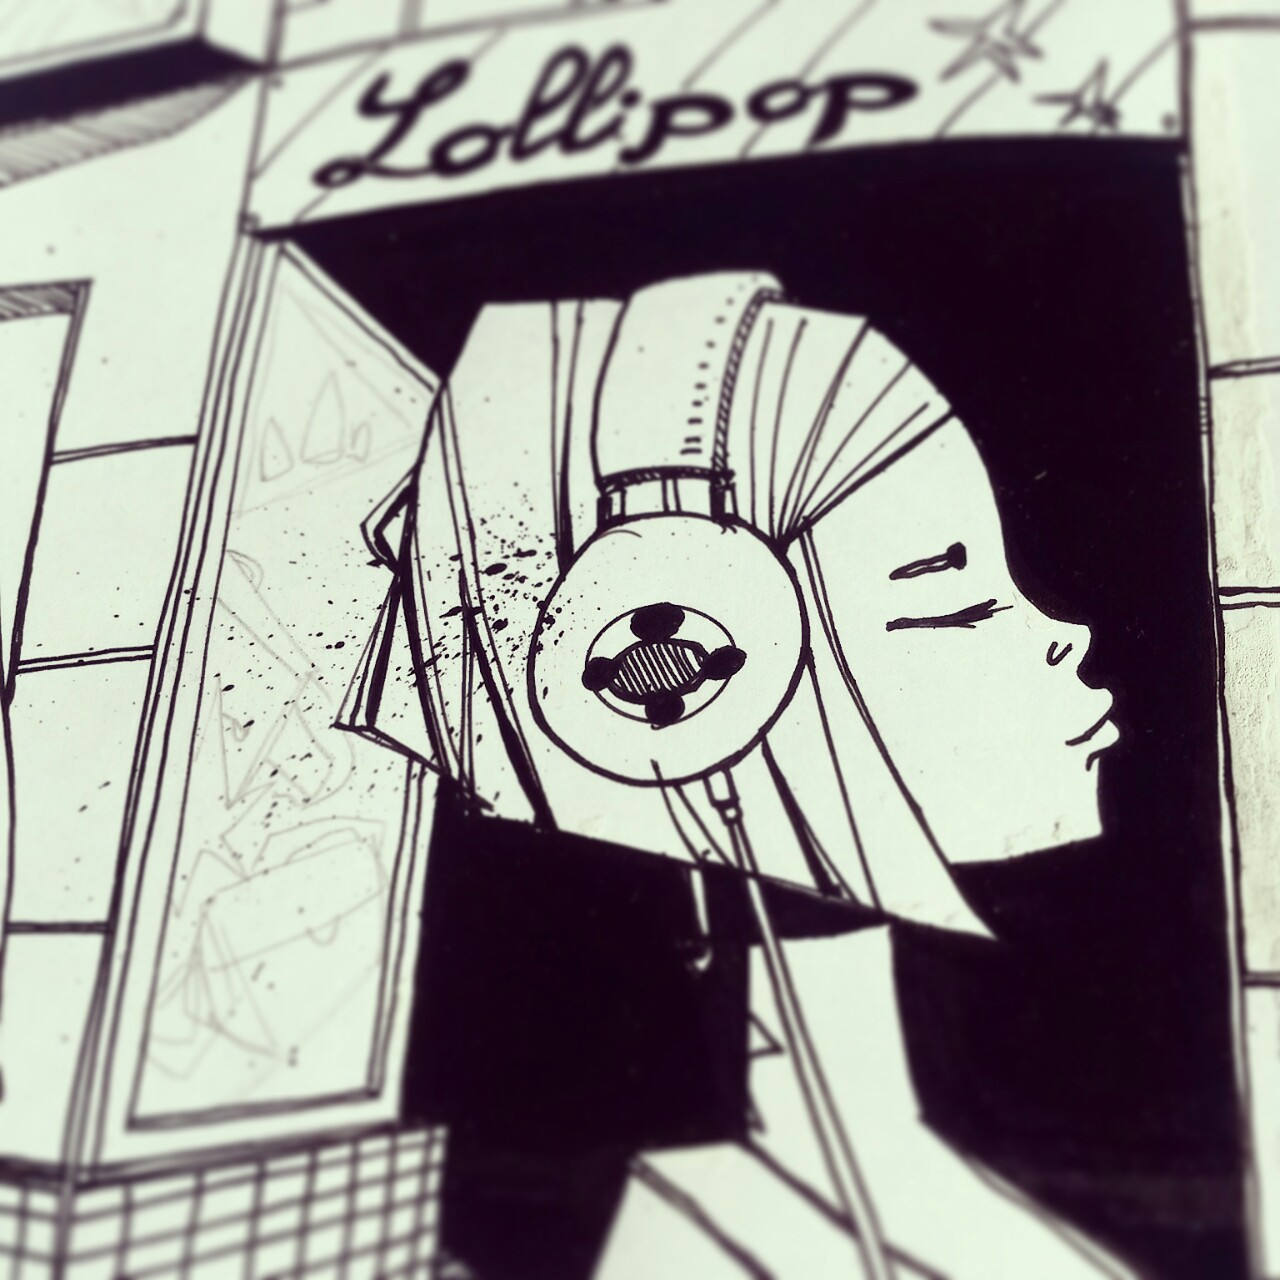 lollipop wip romain laforet